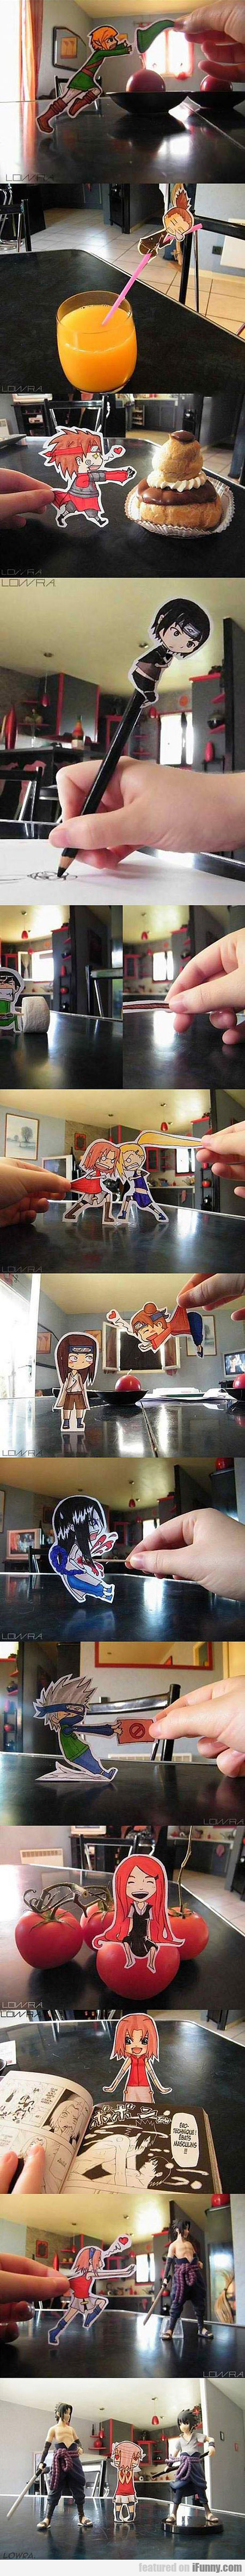 Epic Artworks Using Only Paper